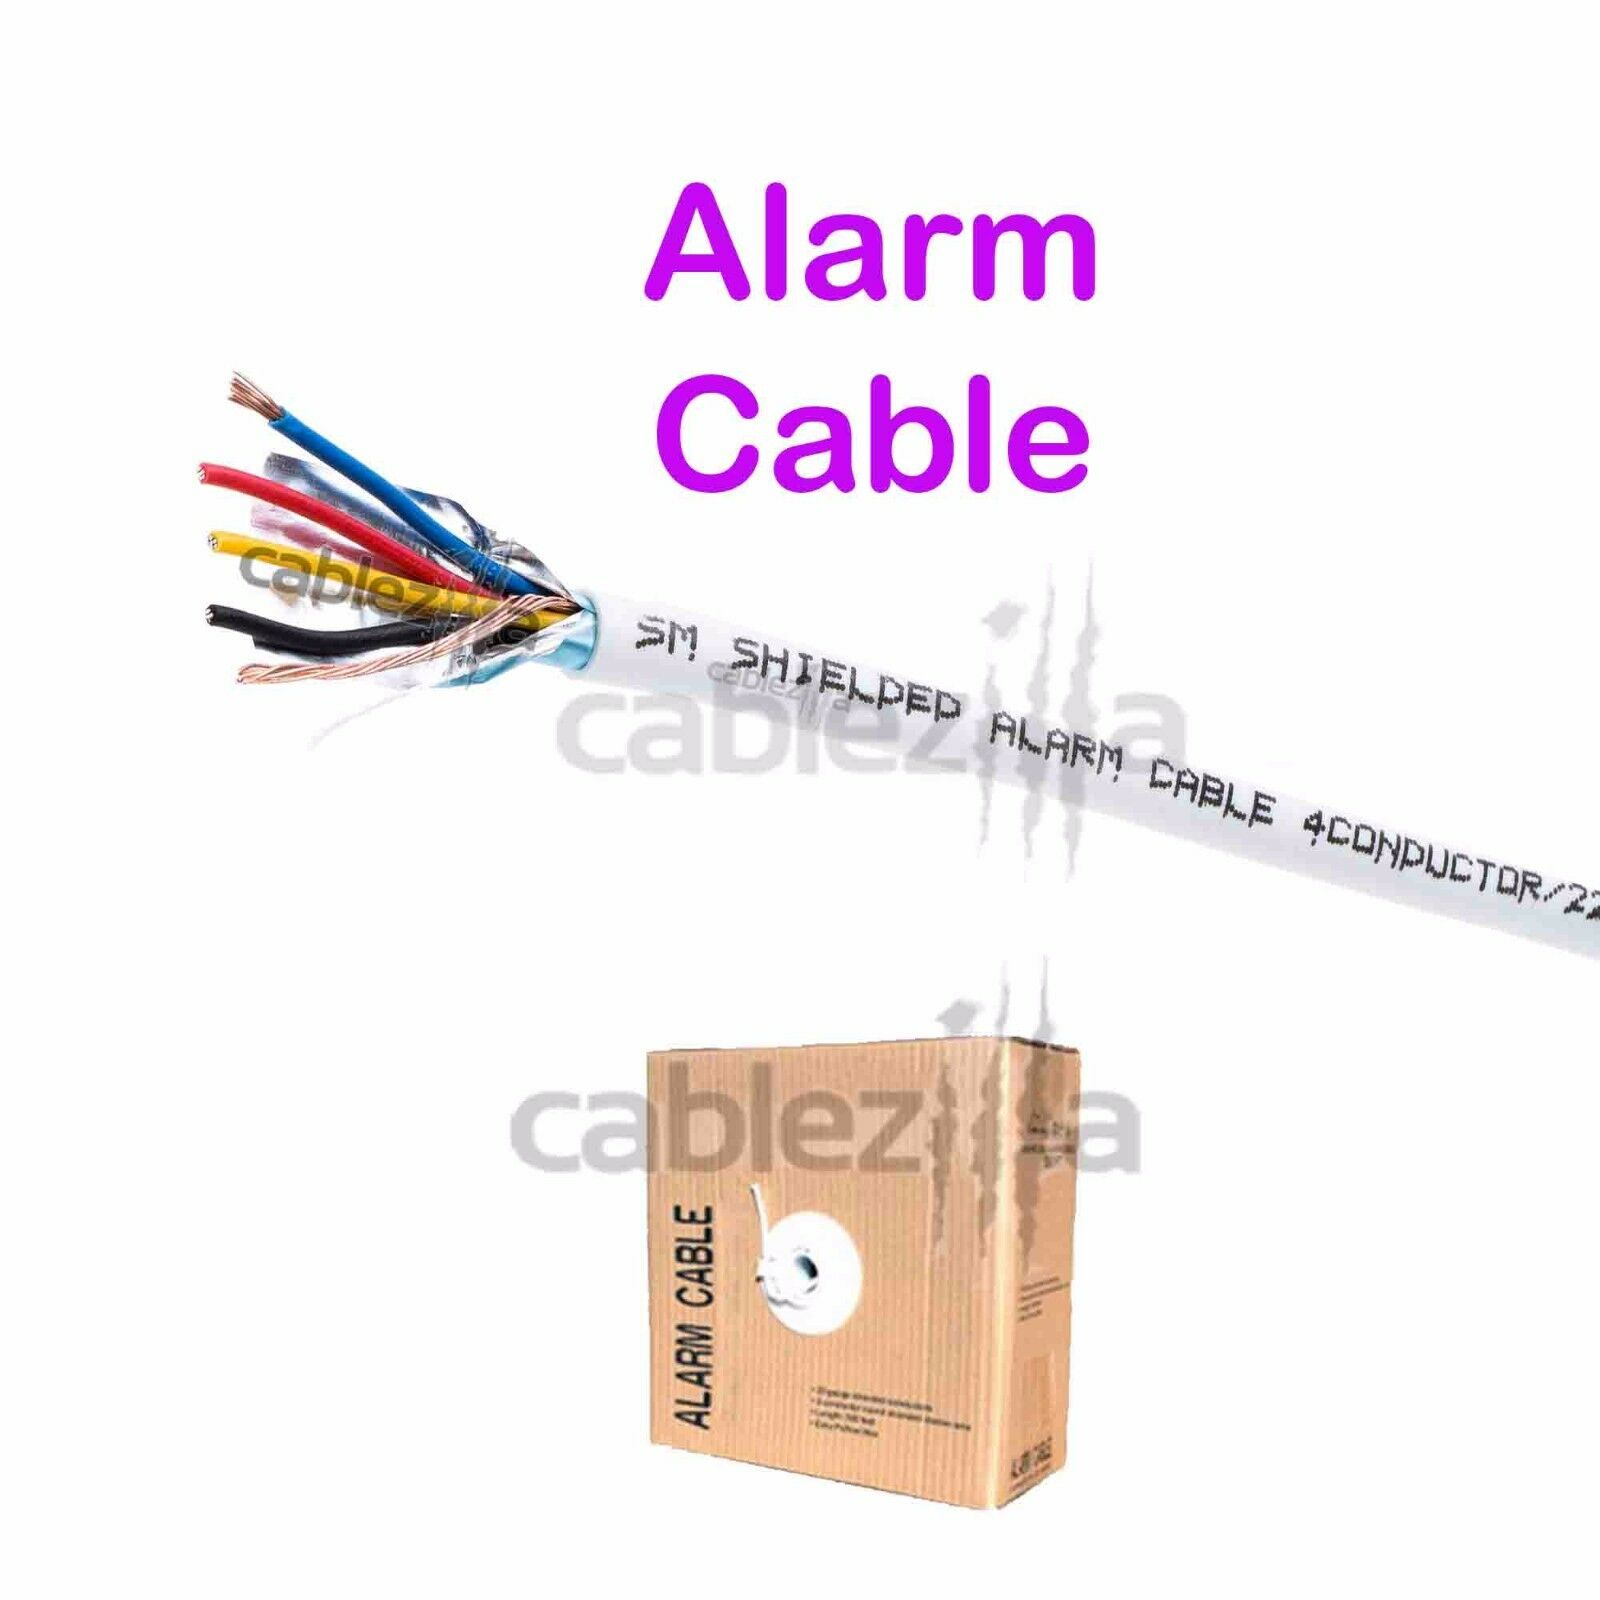 How Much Is 4 Gauge Wire Data Wiring Amplifier Amp Installation Power Kit Ofc Ebay 18 Awg 500ft Alarm Security Cable Stranded Conductor Rh Com Many